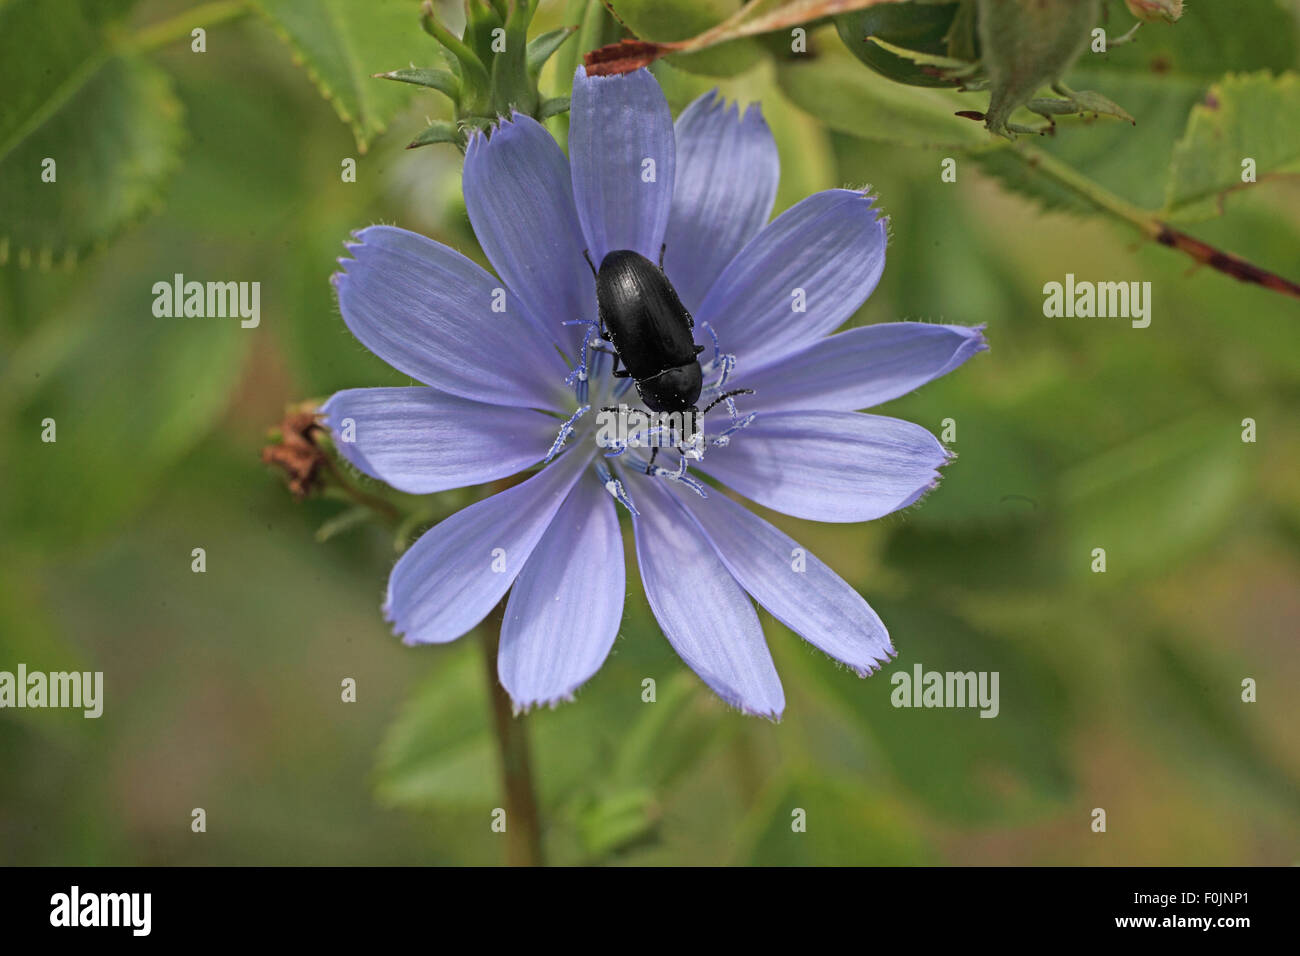 Darkling beetle Tenebrio spp  on chicory flower - Stock Image